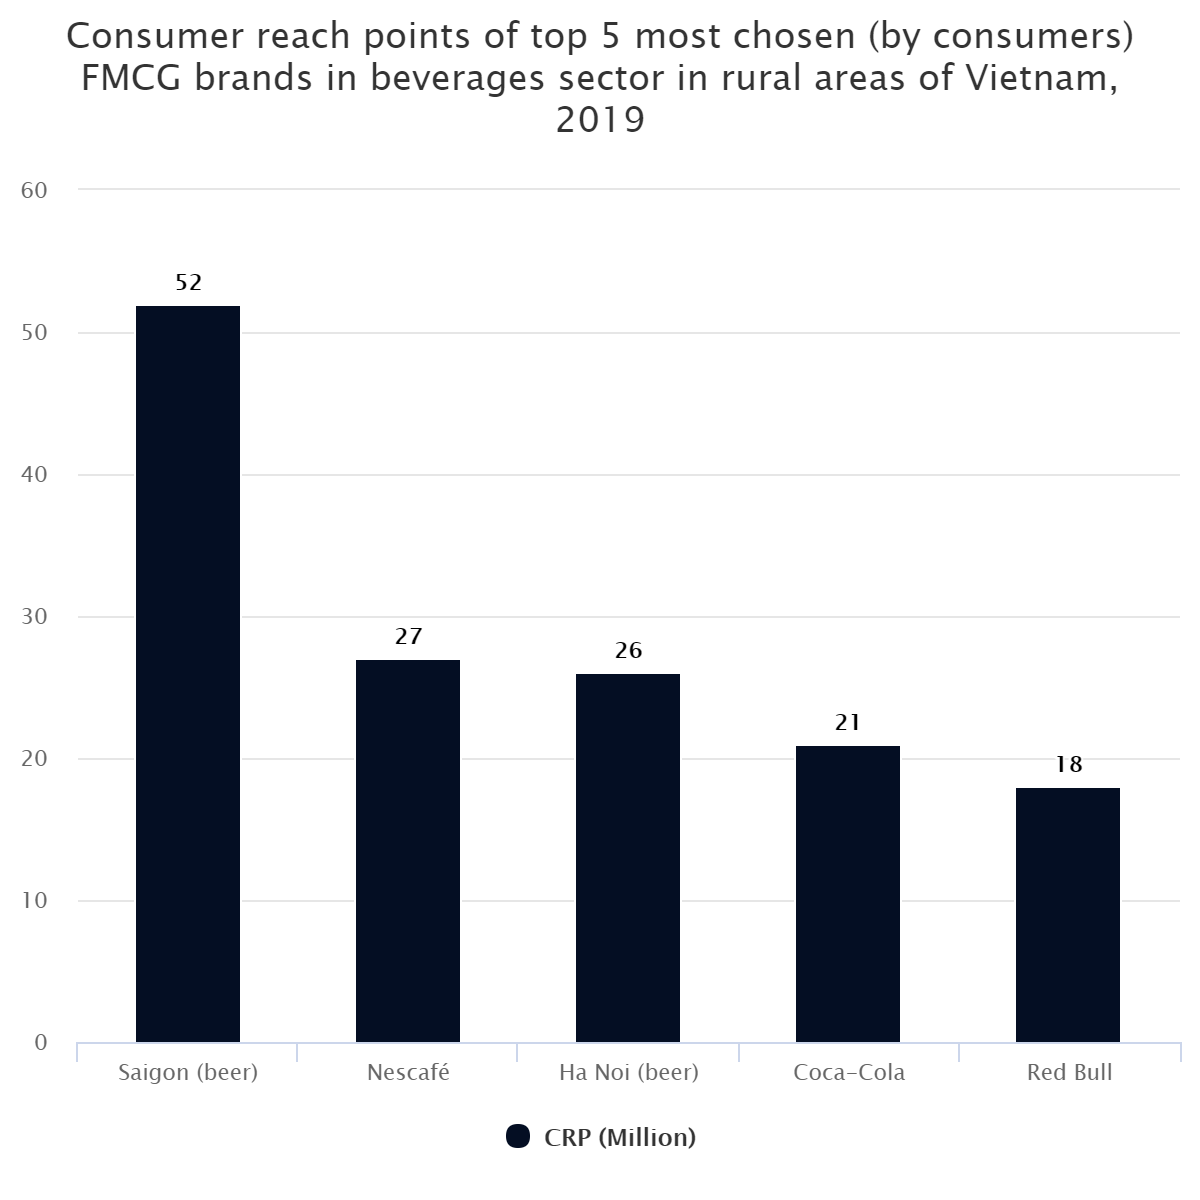 Consumer reach points of top 5 most chosen (by consumers) FMCG brands in beverages sector in rural areas of Vietnam, 2019